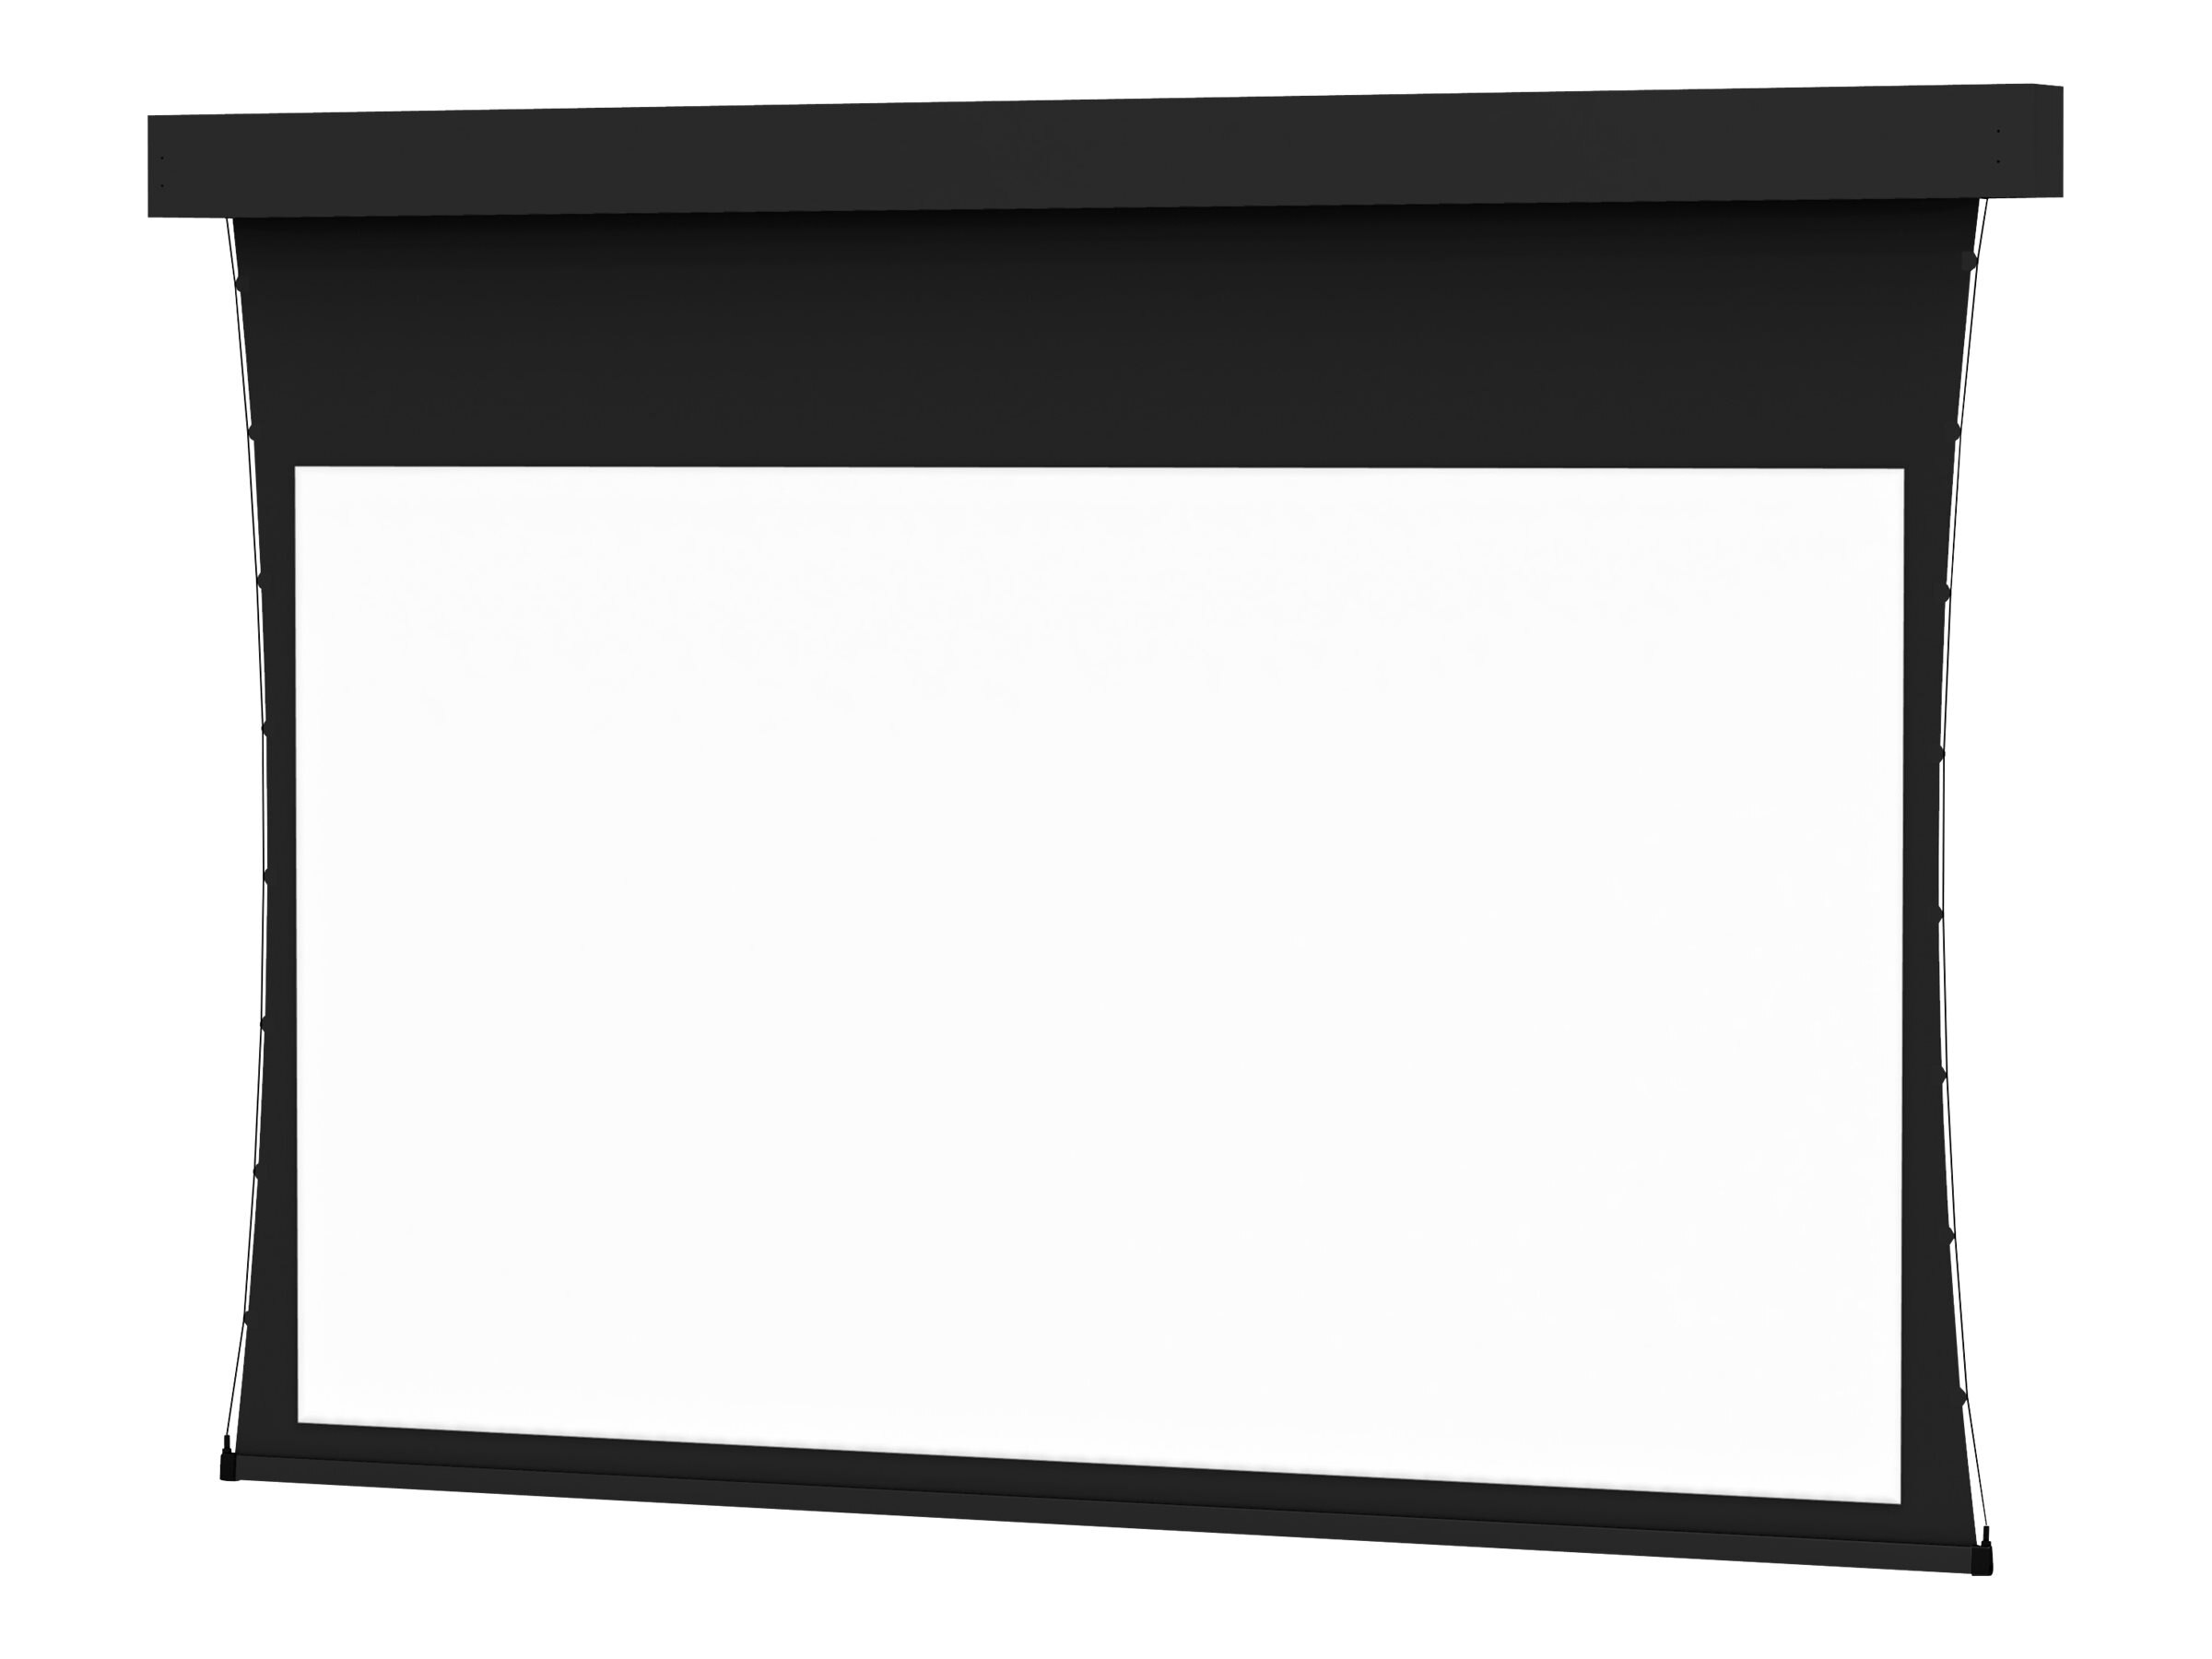 Da-Lite Tensioned Professional Electrol Projector Screen, Cinema Vision, 16:9, 275